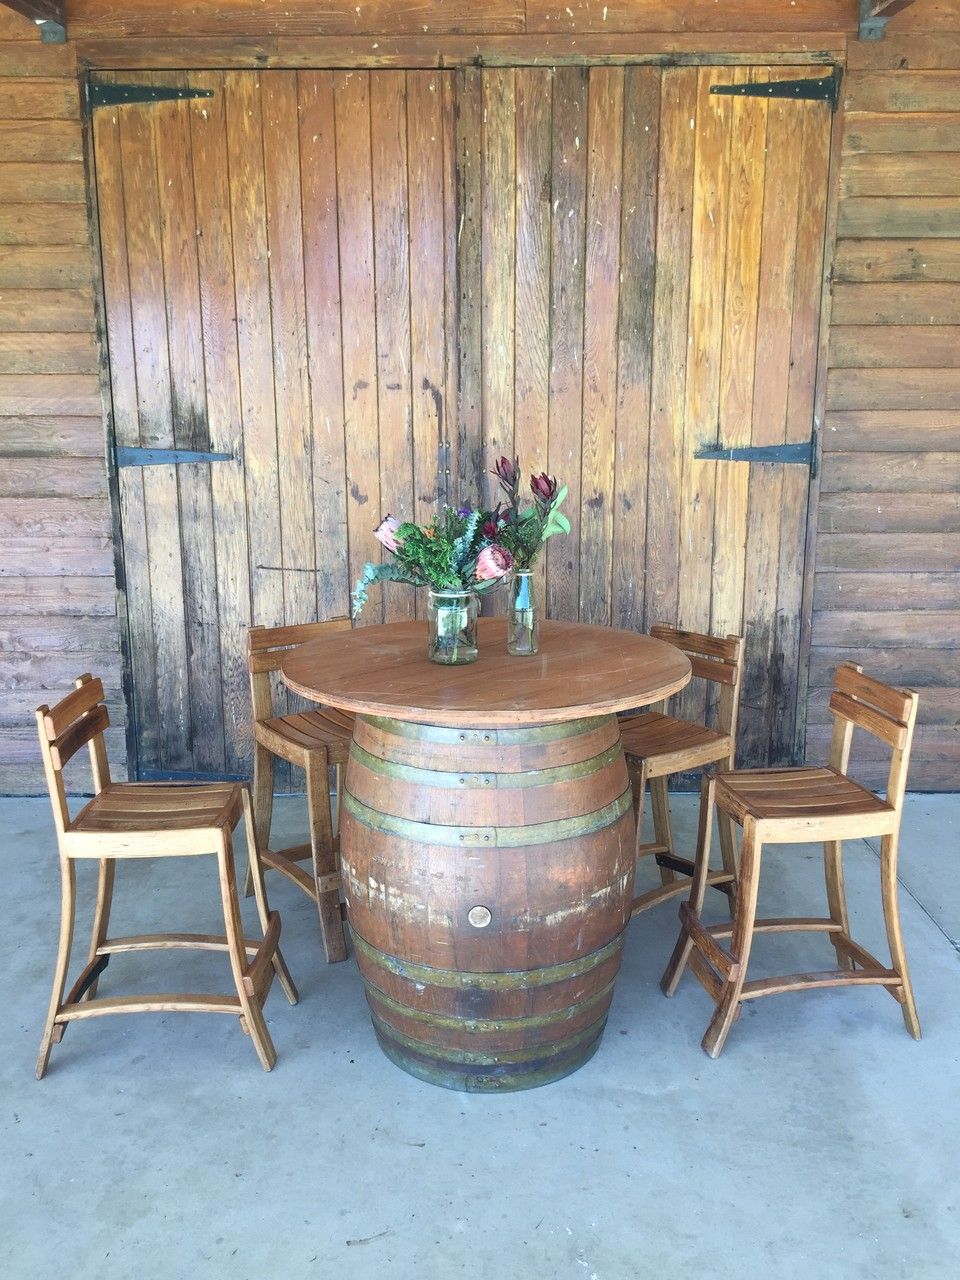 Brisbane barrel hire offers a very affordable delivery service from the gold coast to the sunshine coast if you cannot transport the barrels yourself